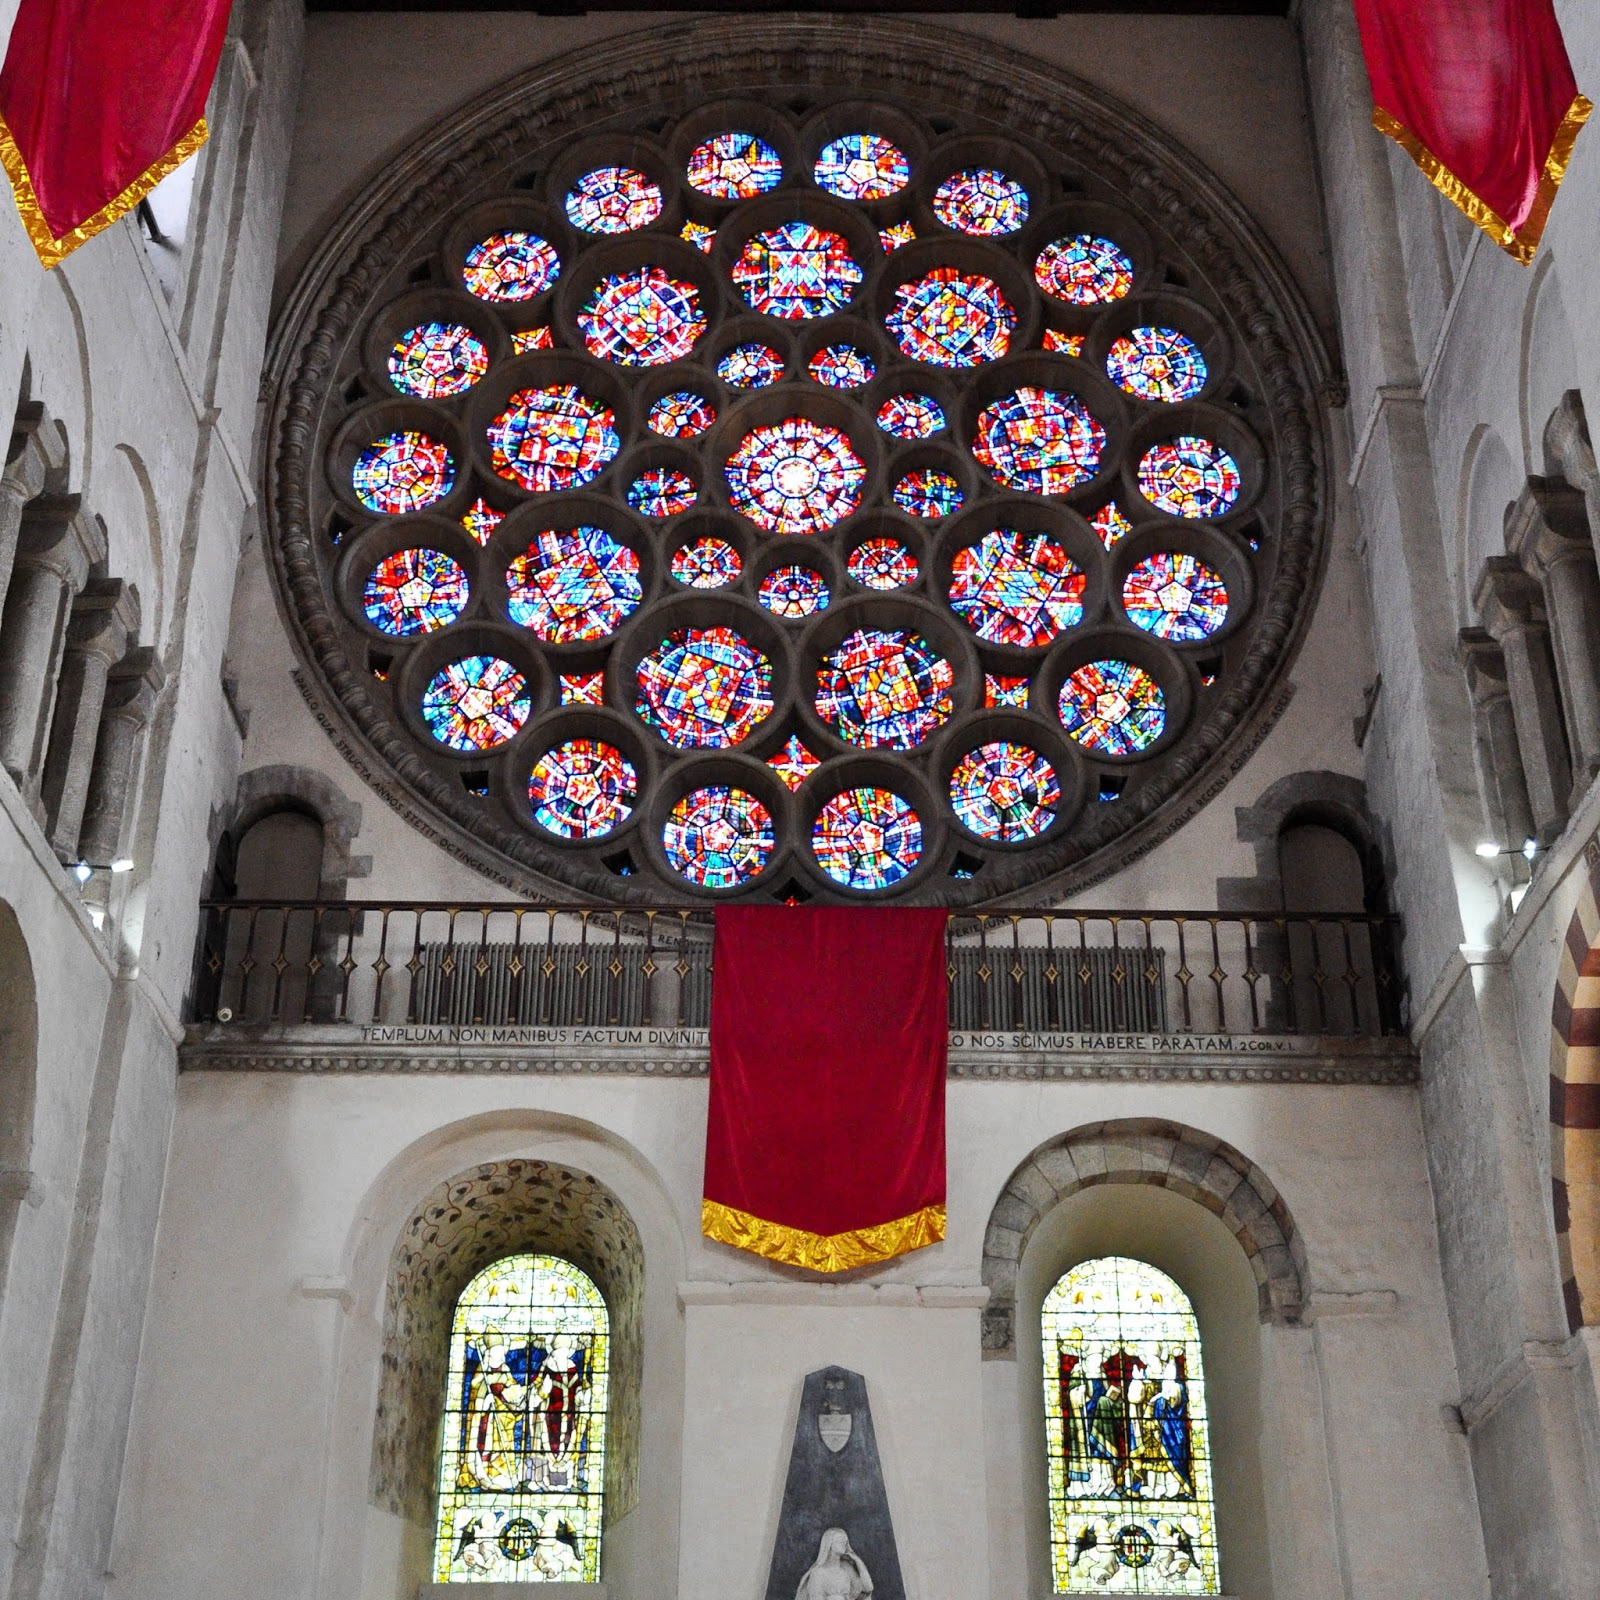 The Rose Window, St. Albans Cathedral, St. Albans, Herts, England